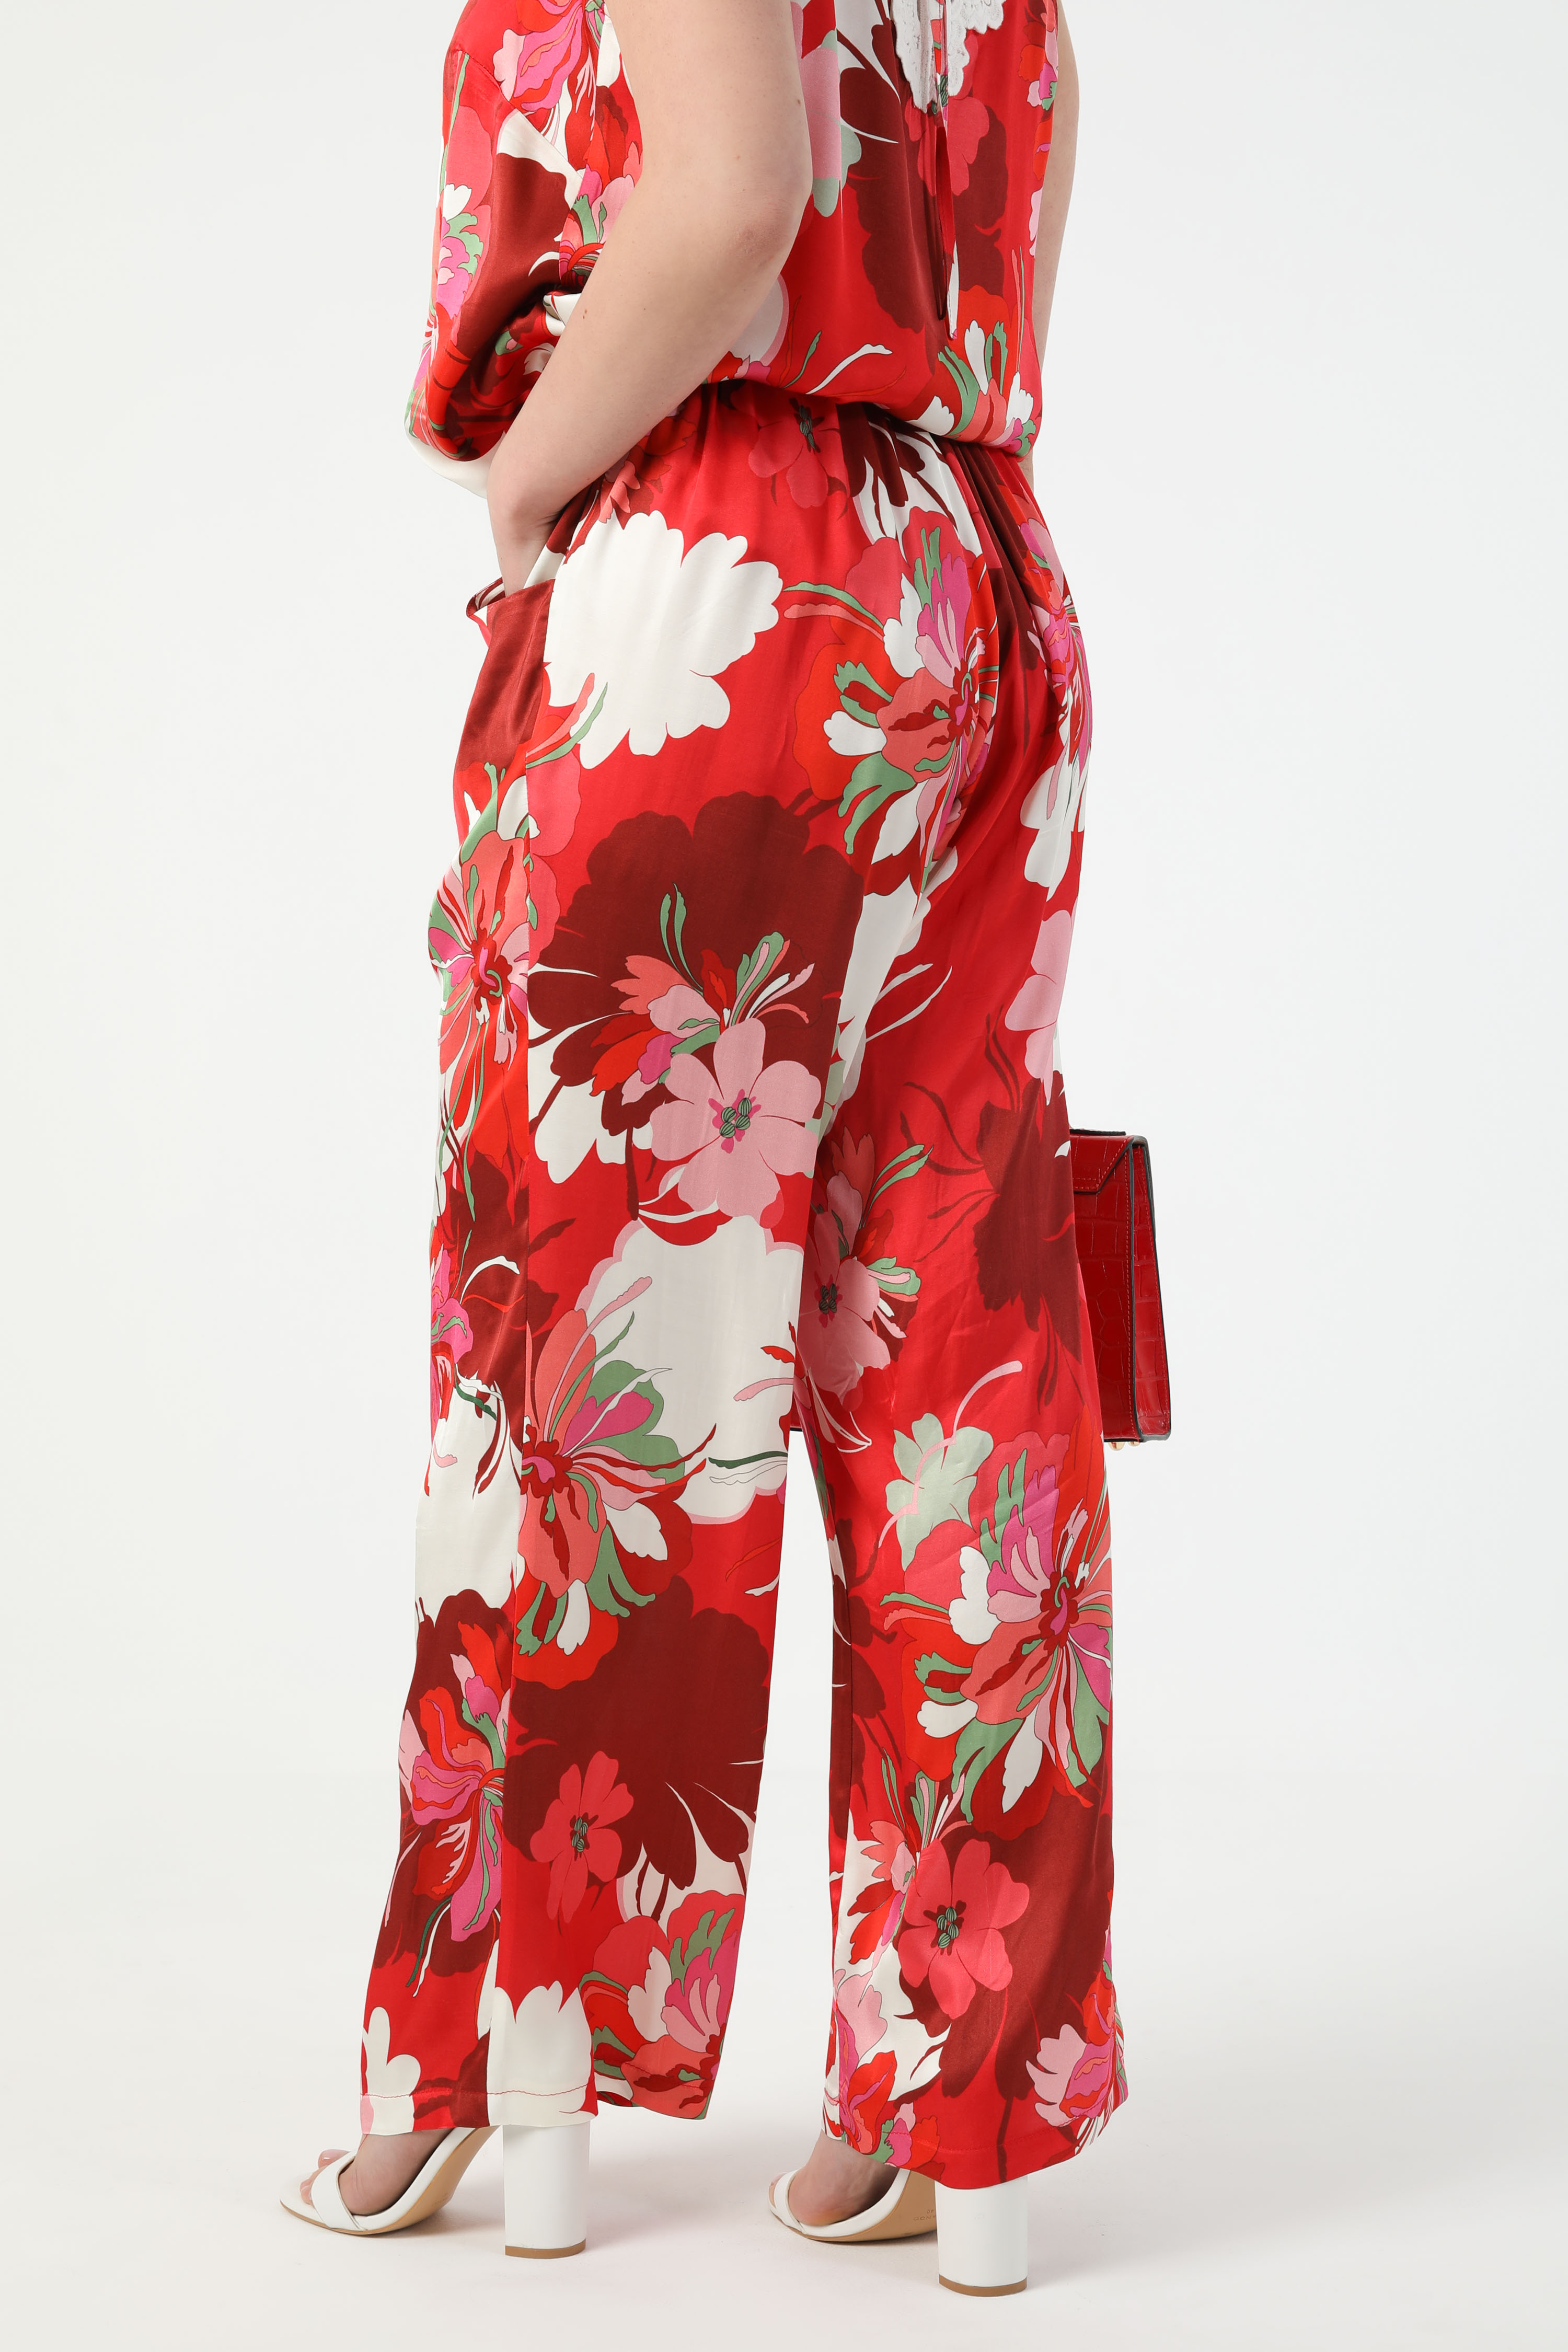 Fluid pants with satin floral print (shipping May 15/20)